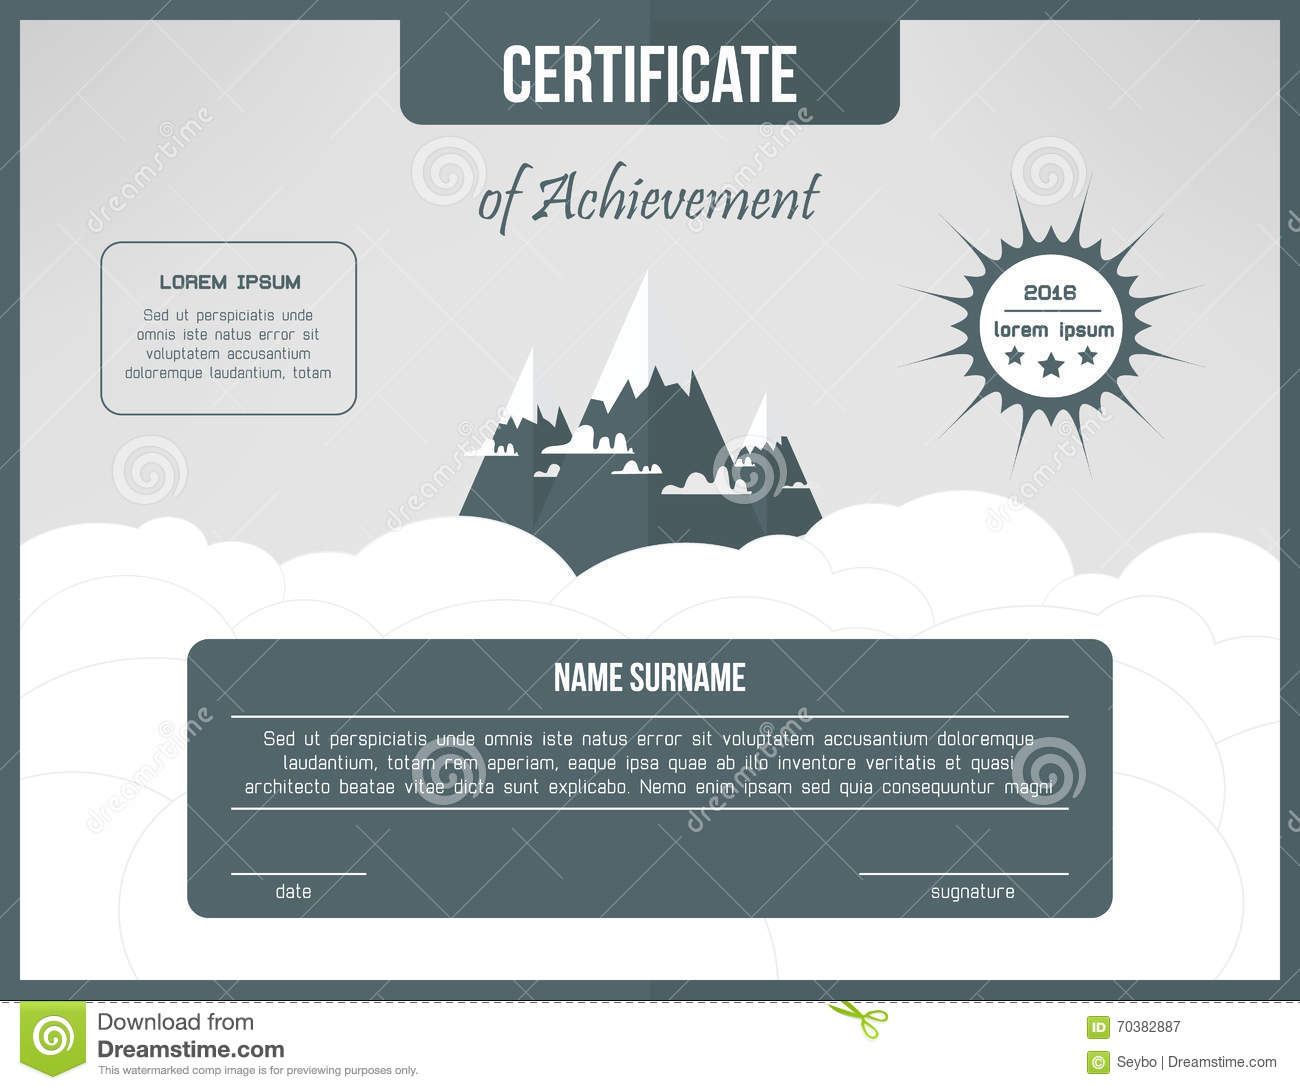 Certificate Of Achievement Template Certification Background Web